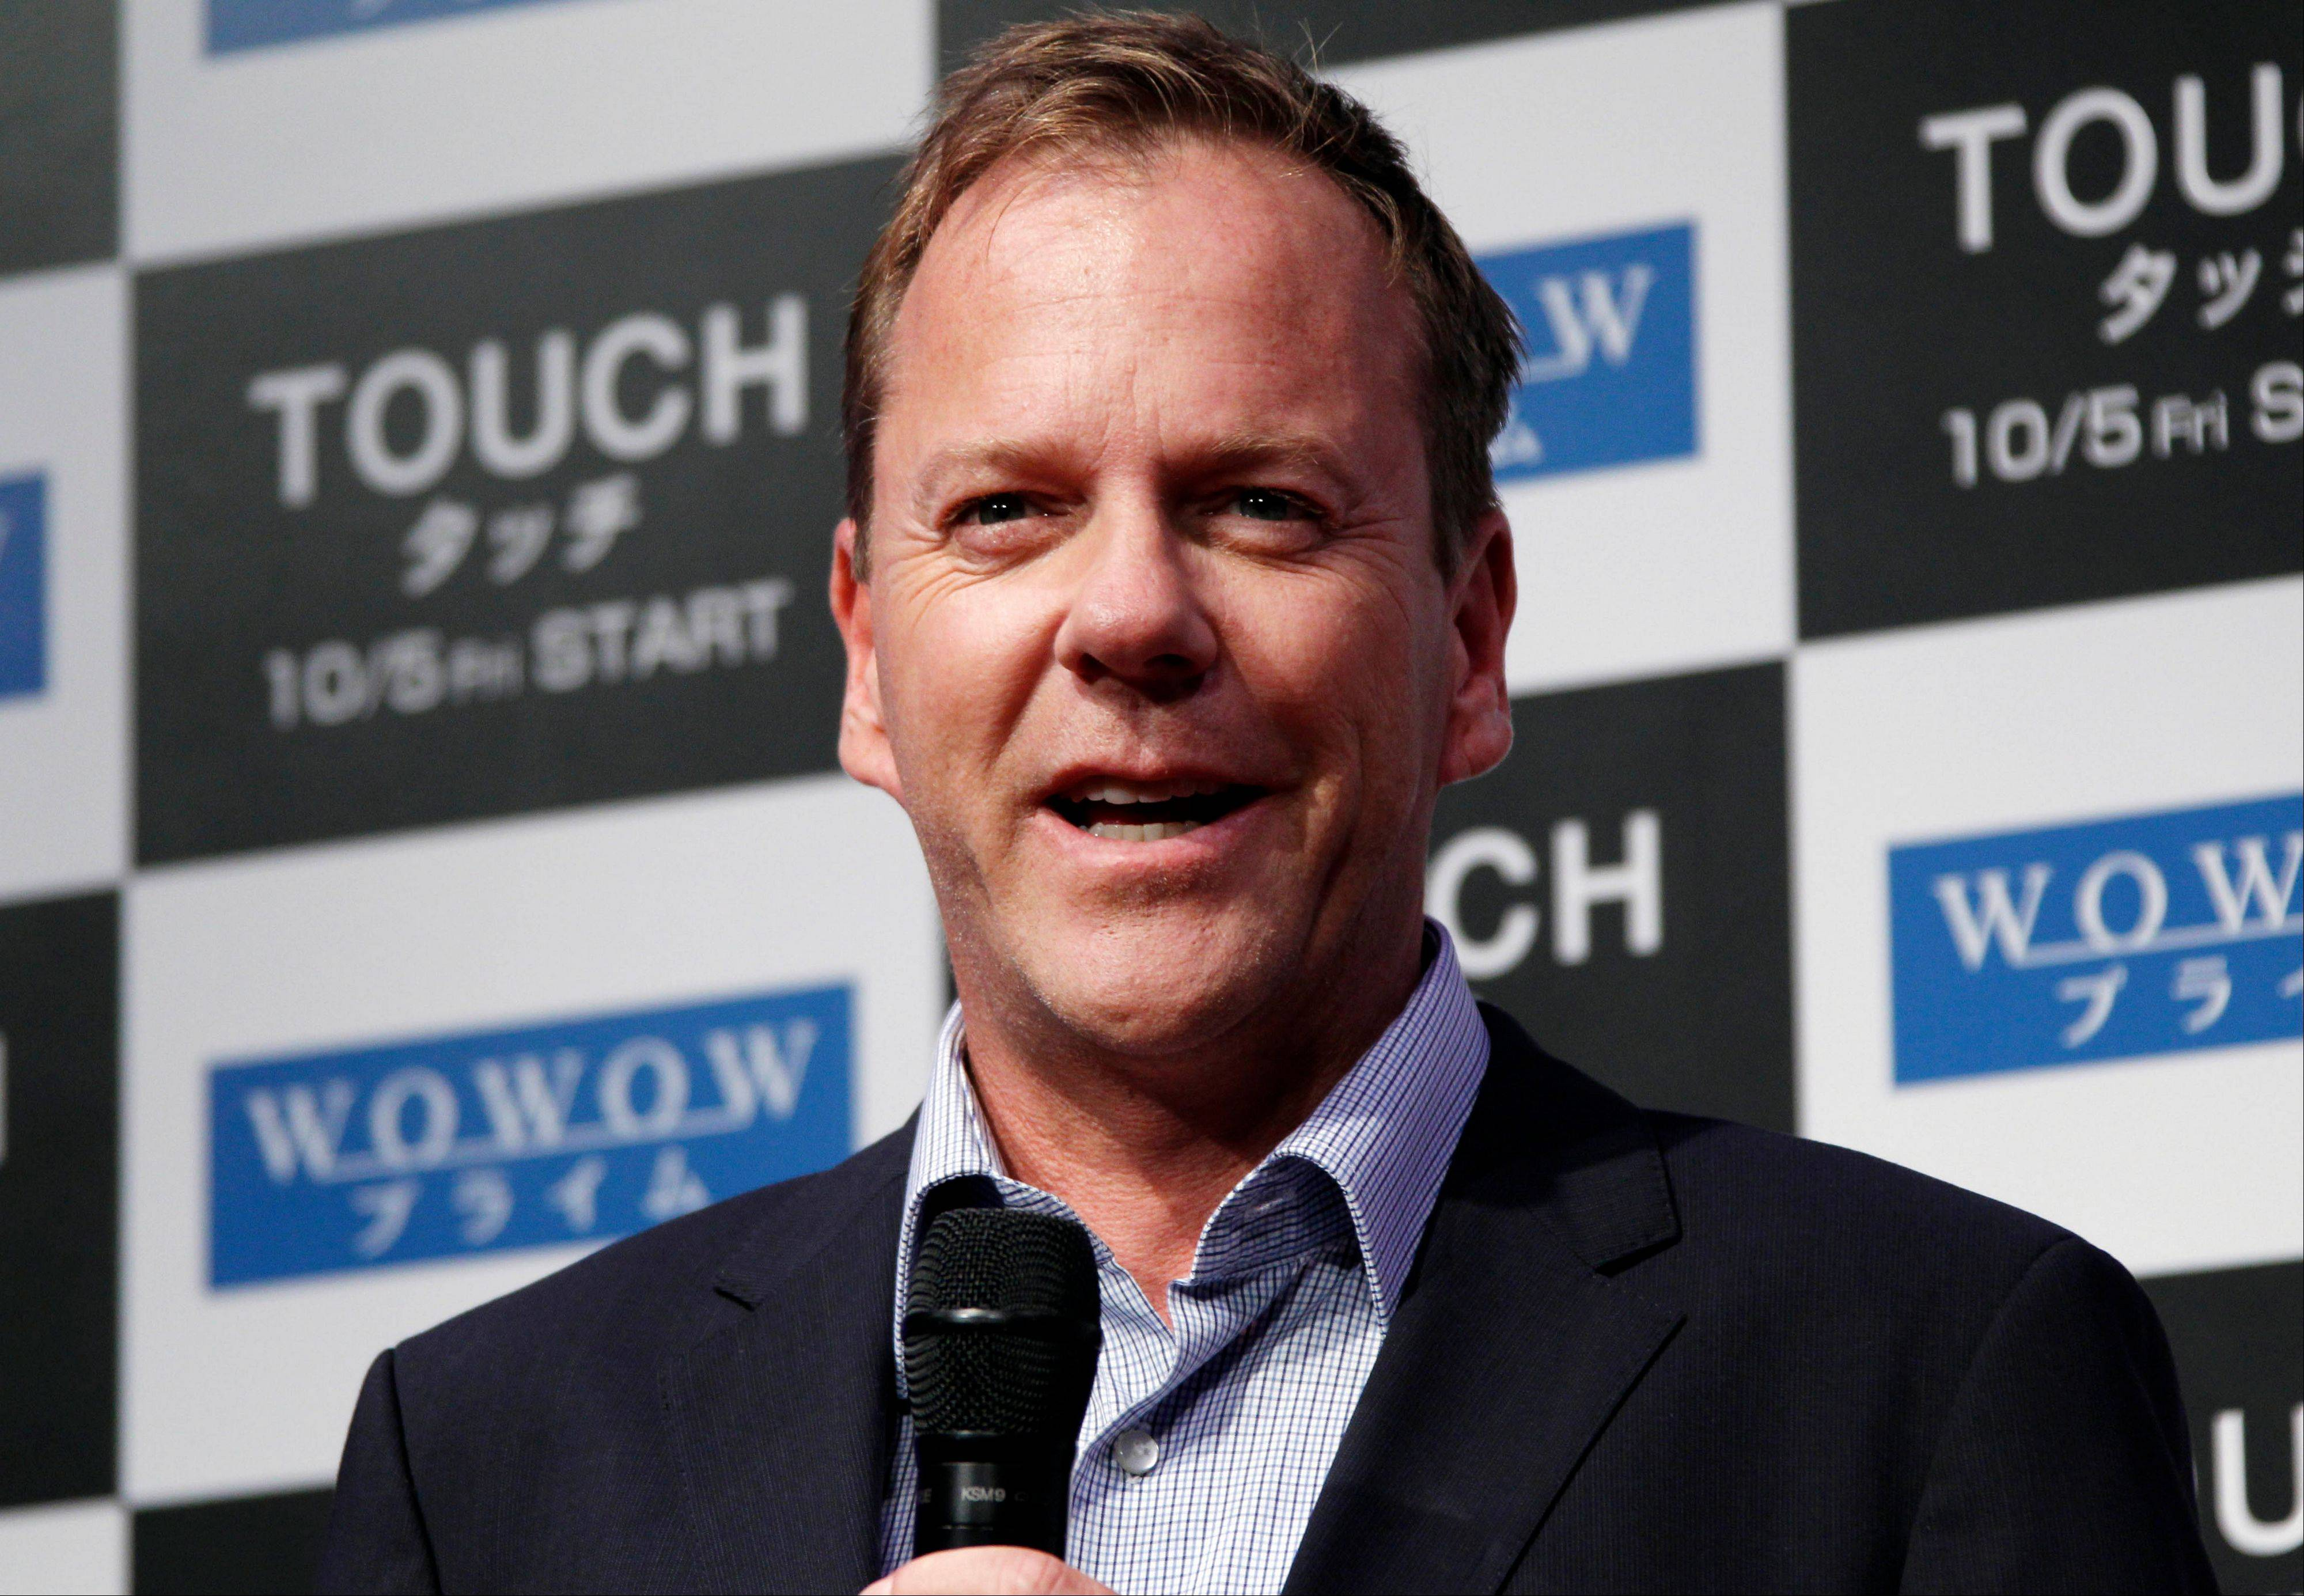 Kiefer Sutherland has been named Man of the Year by Harvard University's Hasty Pudding Theatricals. Sutherland will be roasted and receive his ceremonial pudding pot at a ceremony on Friday, Feb. 8.